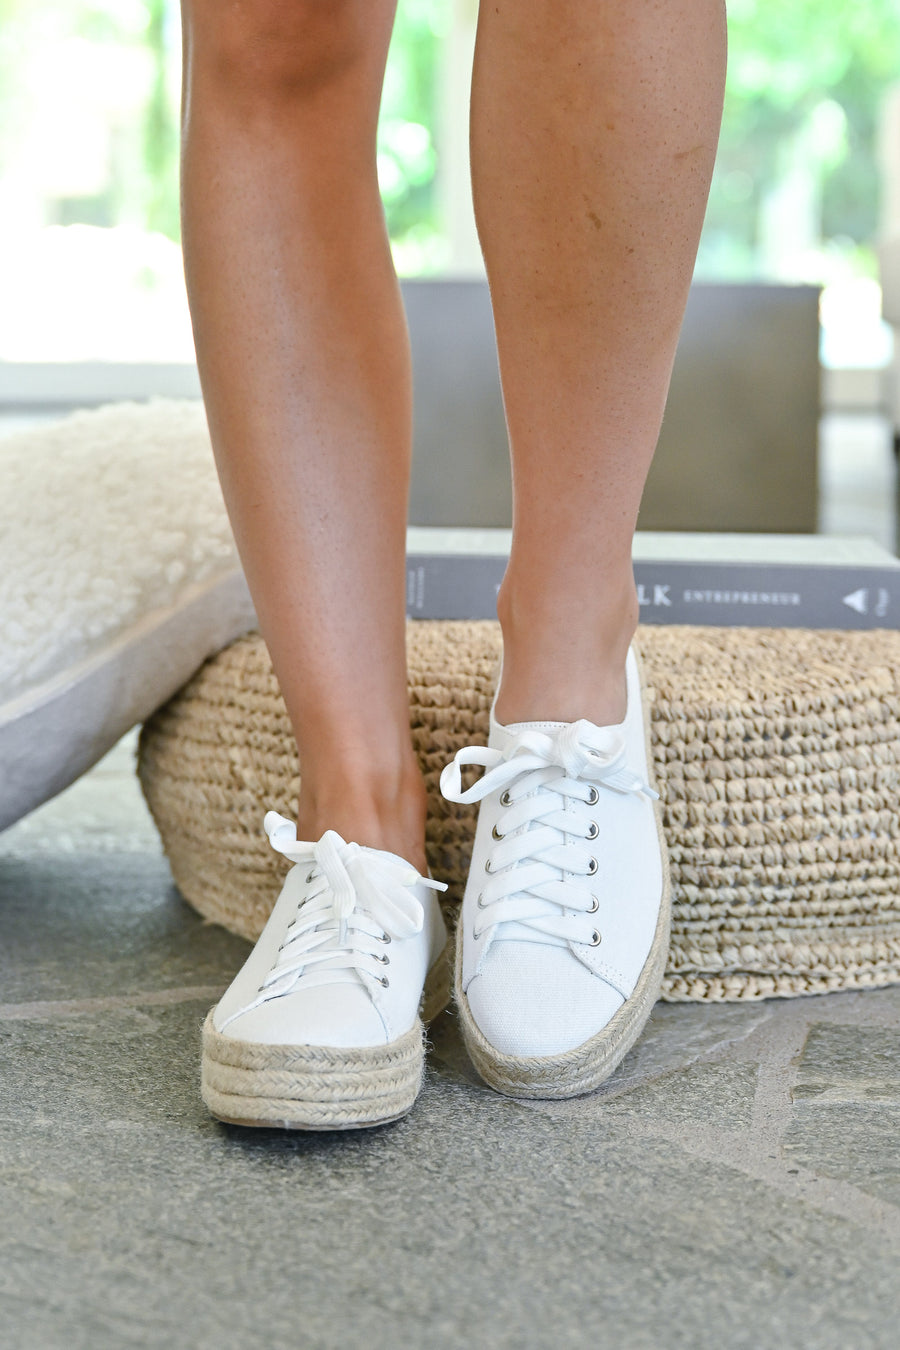 Jessica Espadrille Platform Sneakers - White womens straw bottom lace up sneakers closet candy side